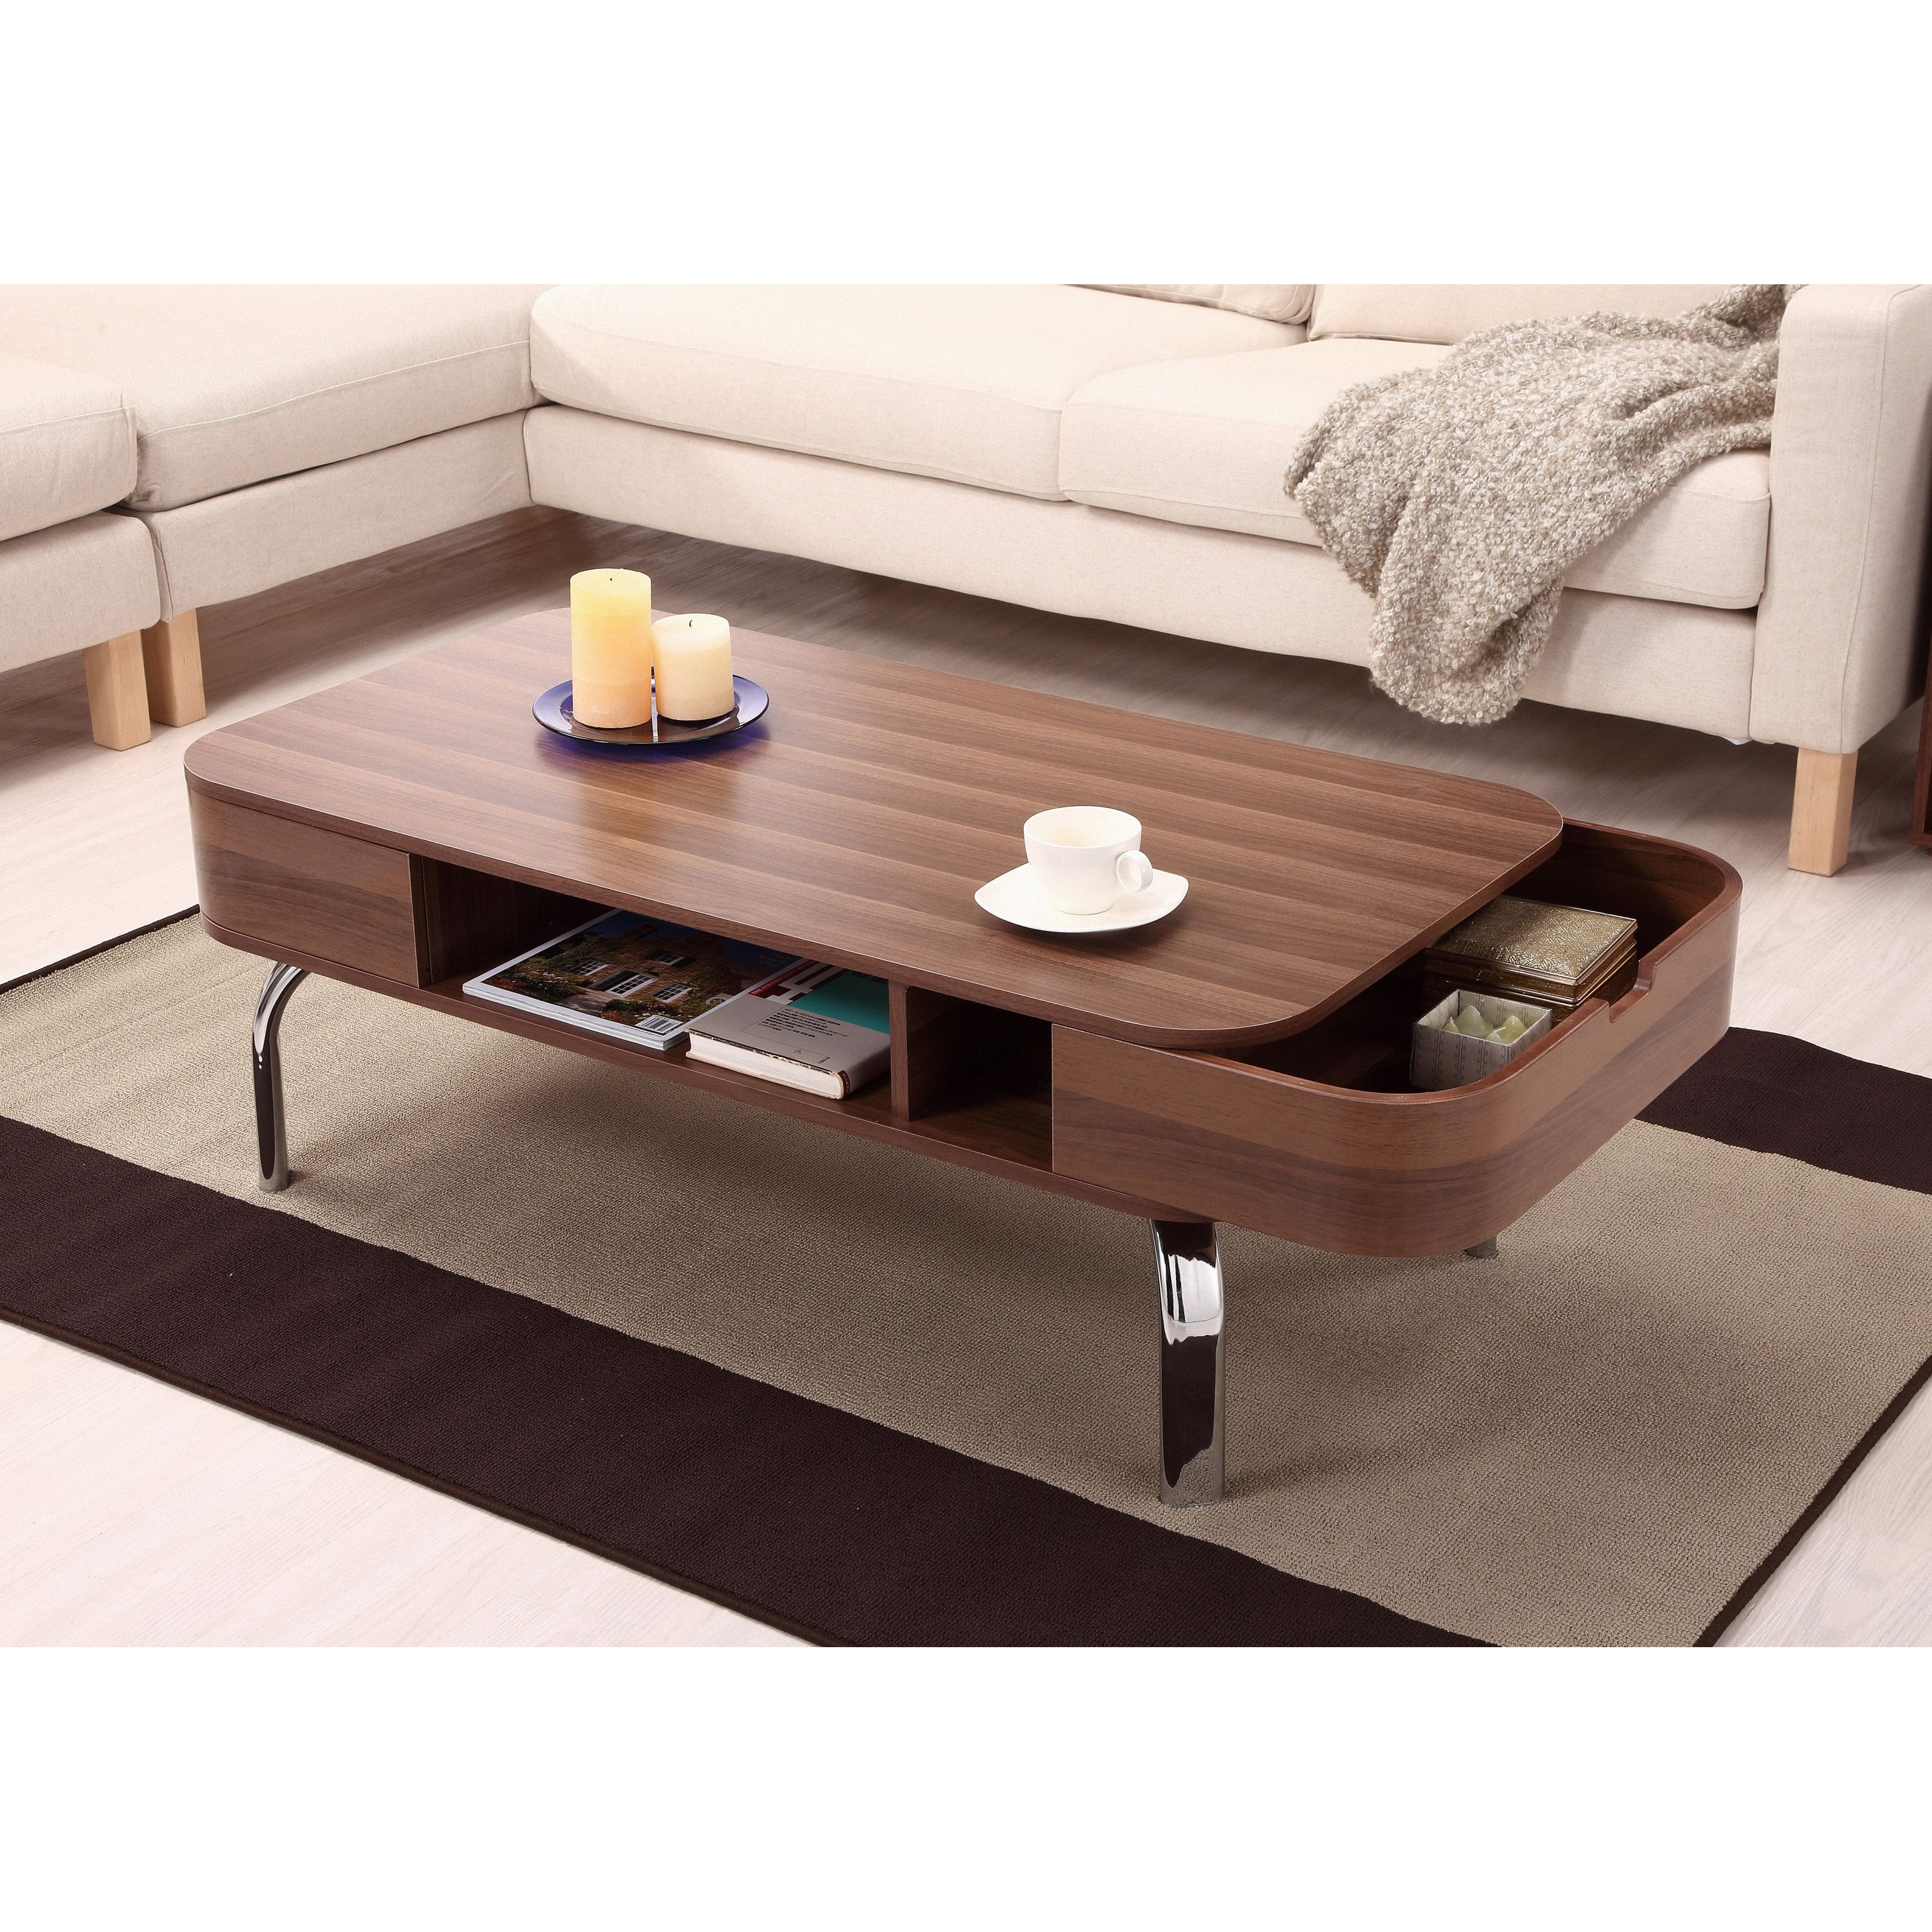 Johannesburg Coffee Table Modern Features: The Berkley Wooden Coffee Table, By Furniture Of America